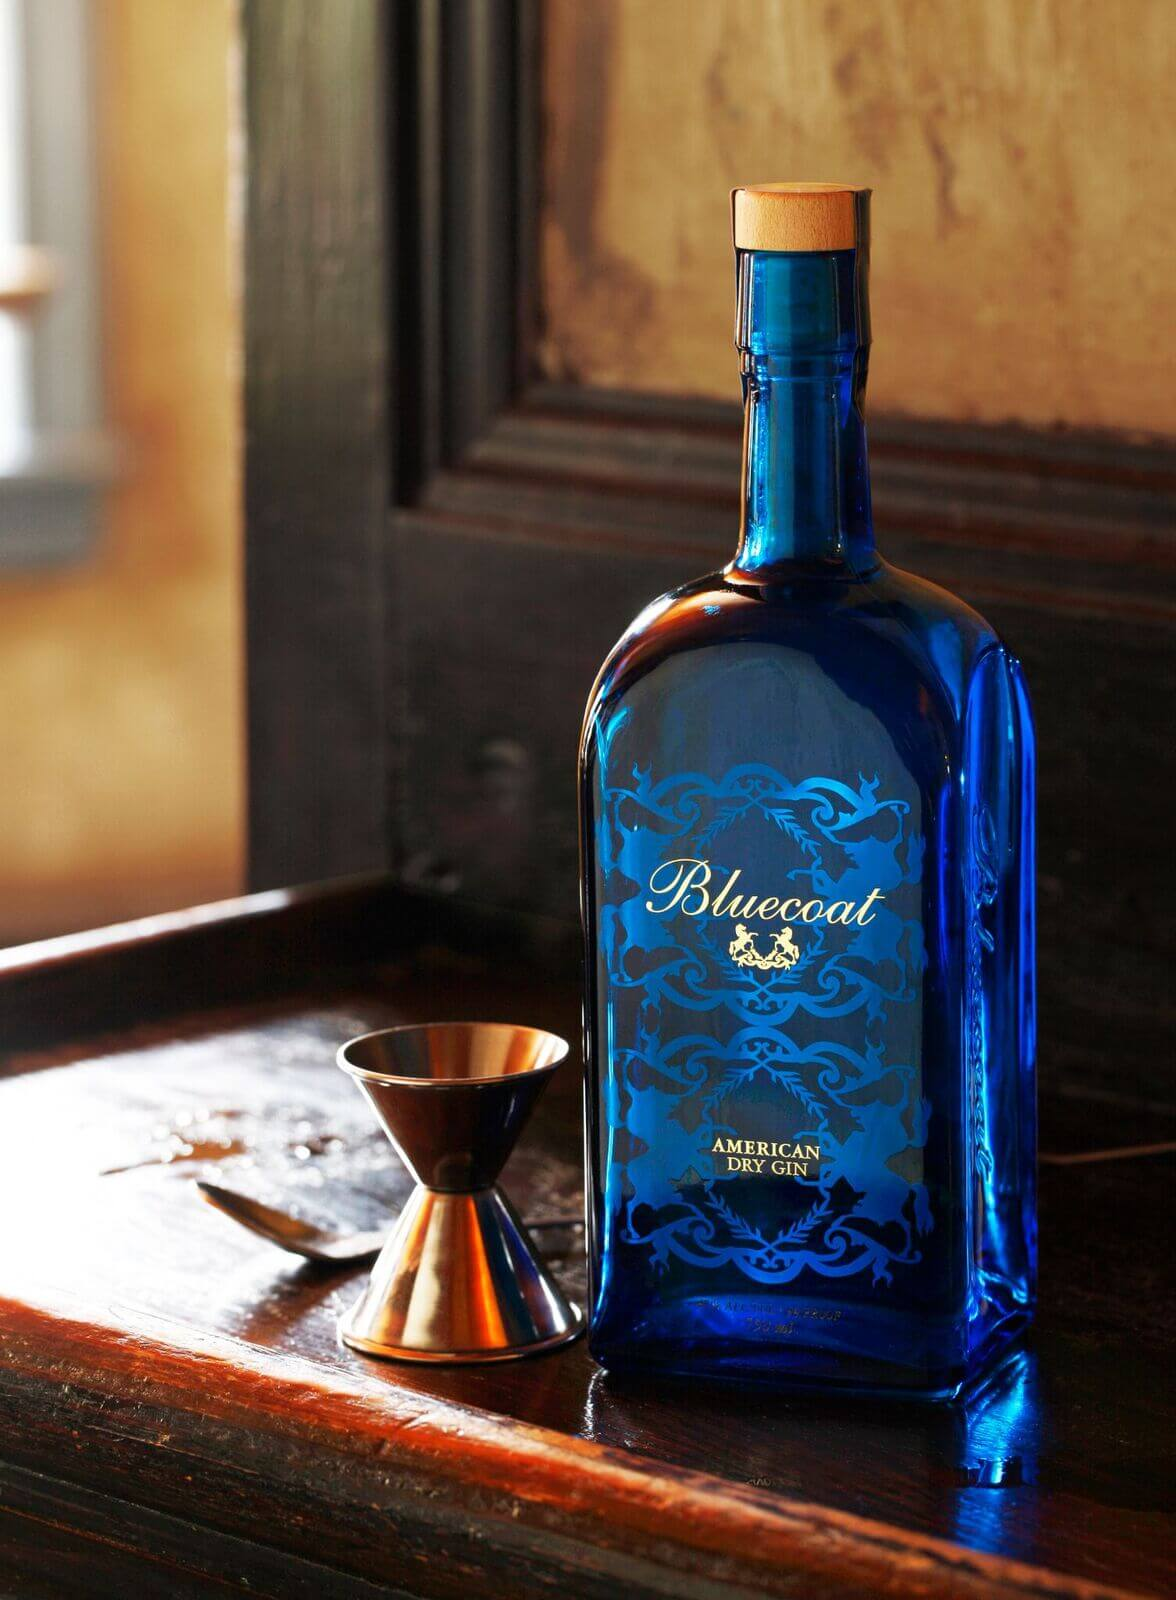 Philadelphia Distilling Bluecoat American Dry Gin - American spirits for 4th of July promotions